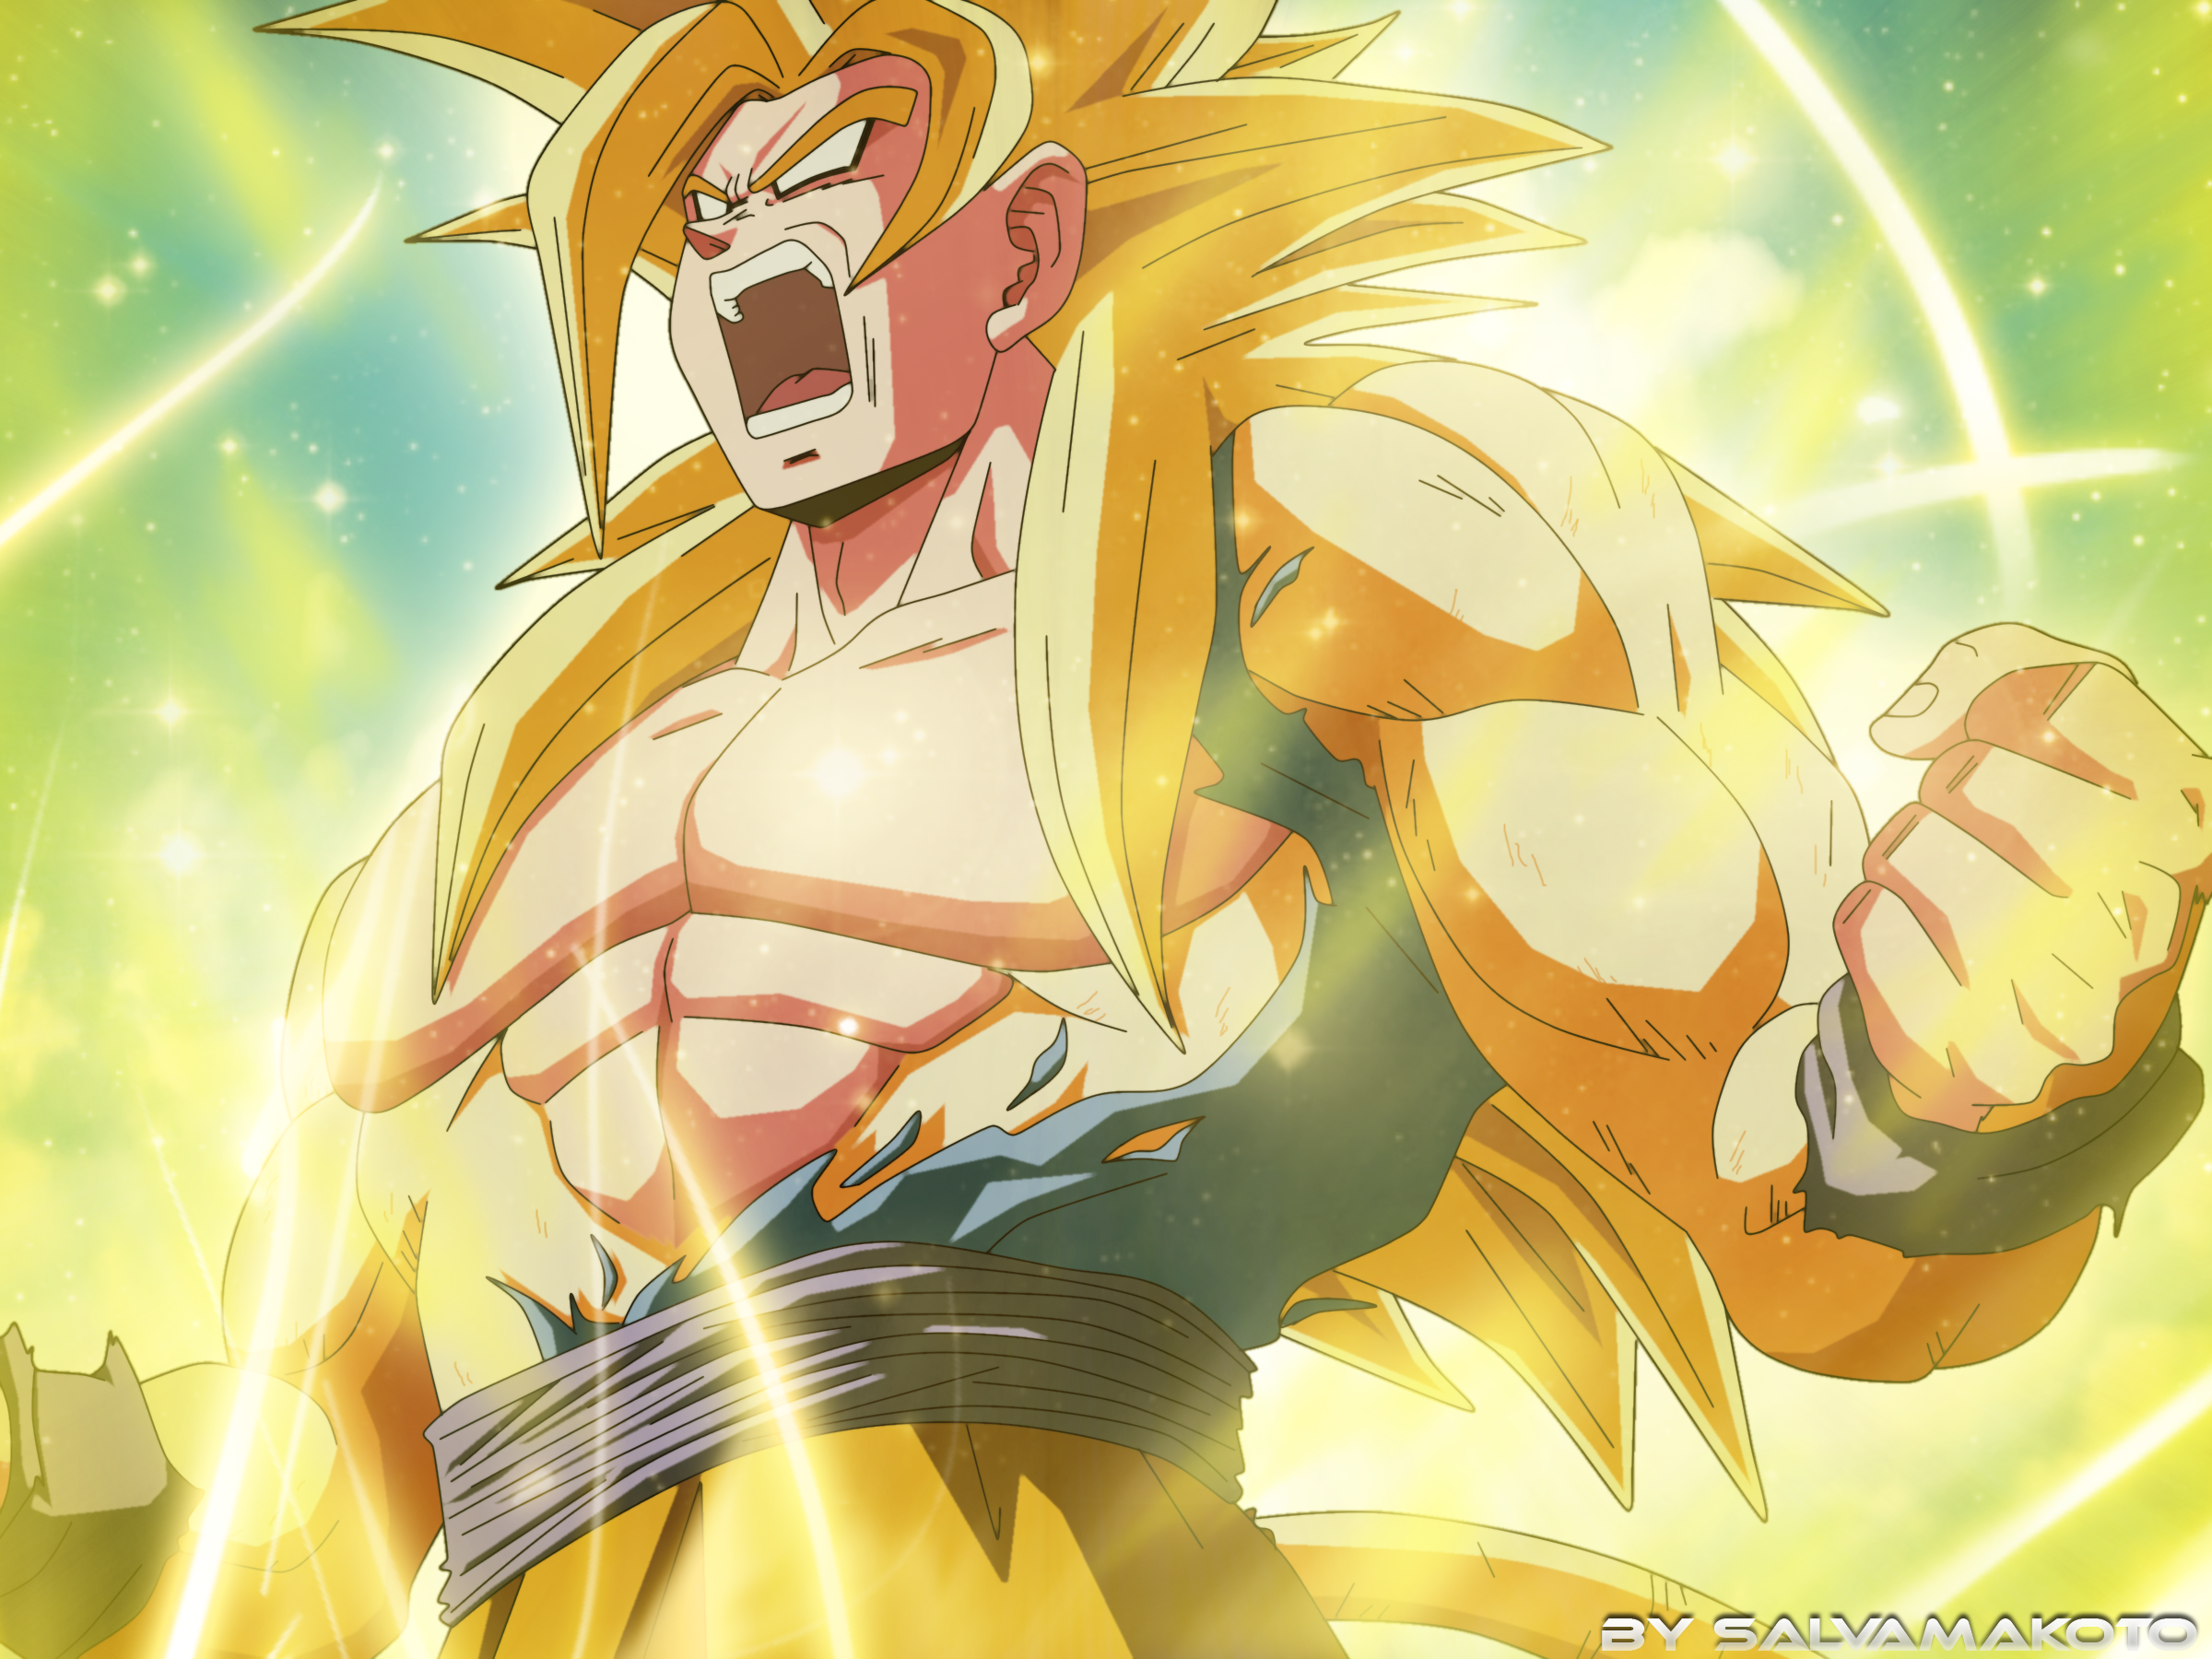 Goku new super saiyan by salvamakoto on deviantart - Goku vs vegeta super saiyan 5 ...